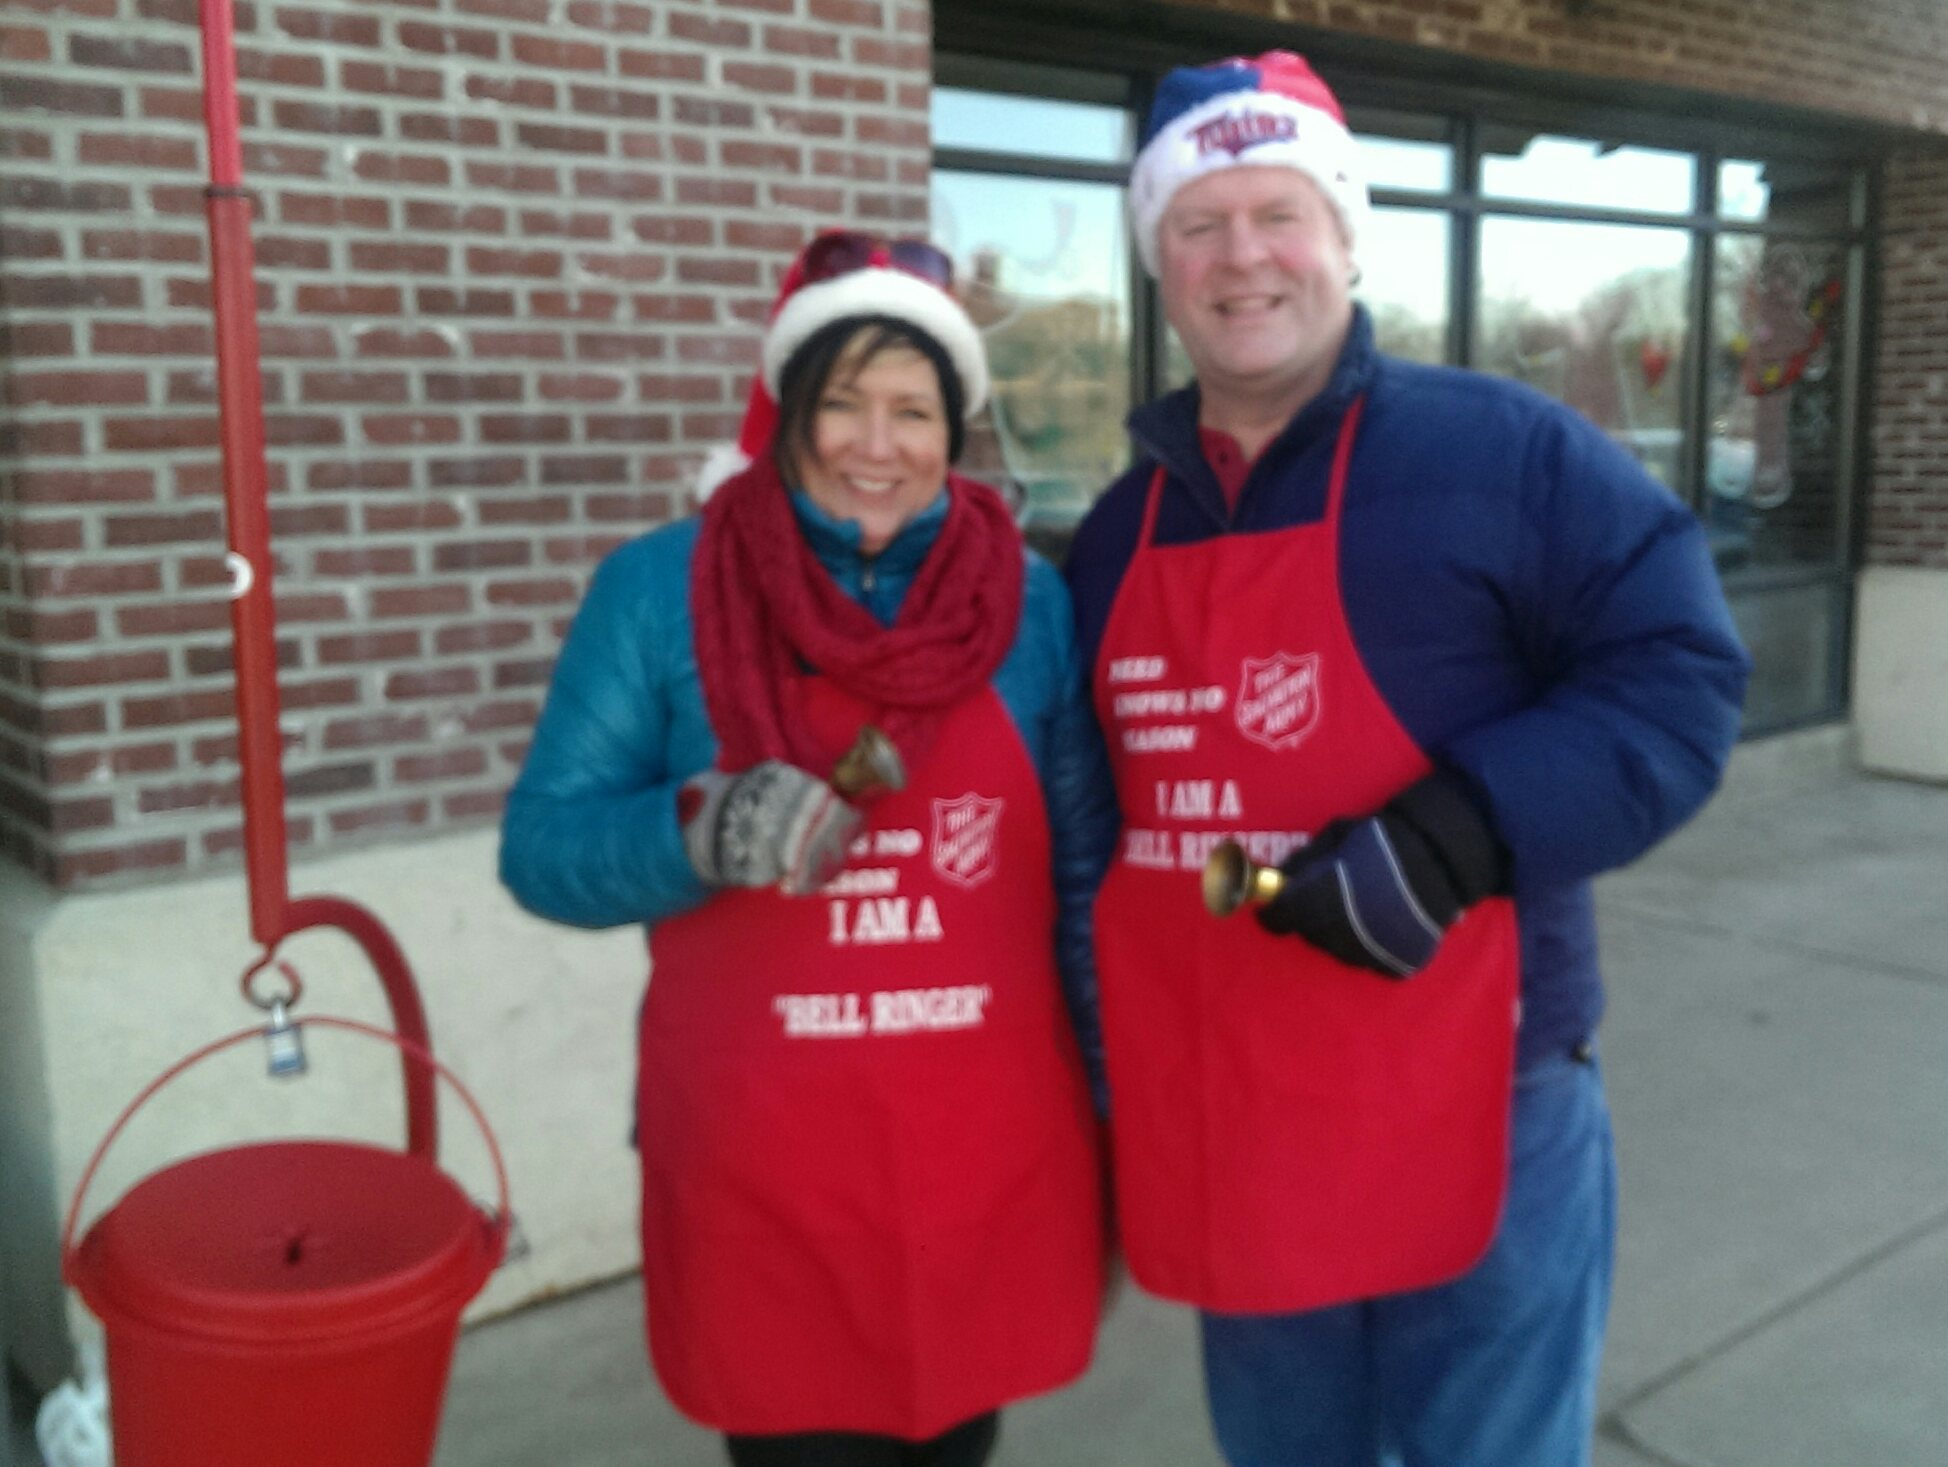 Two NUMC volunteers ringing bells for the Salvation Army outside EconoFoods